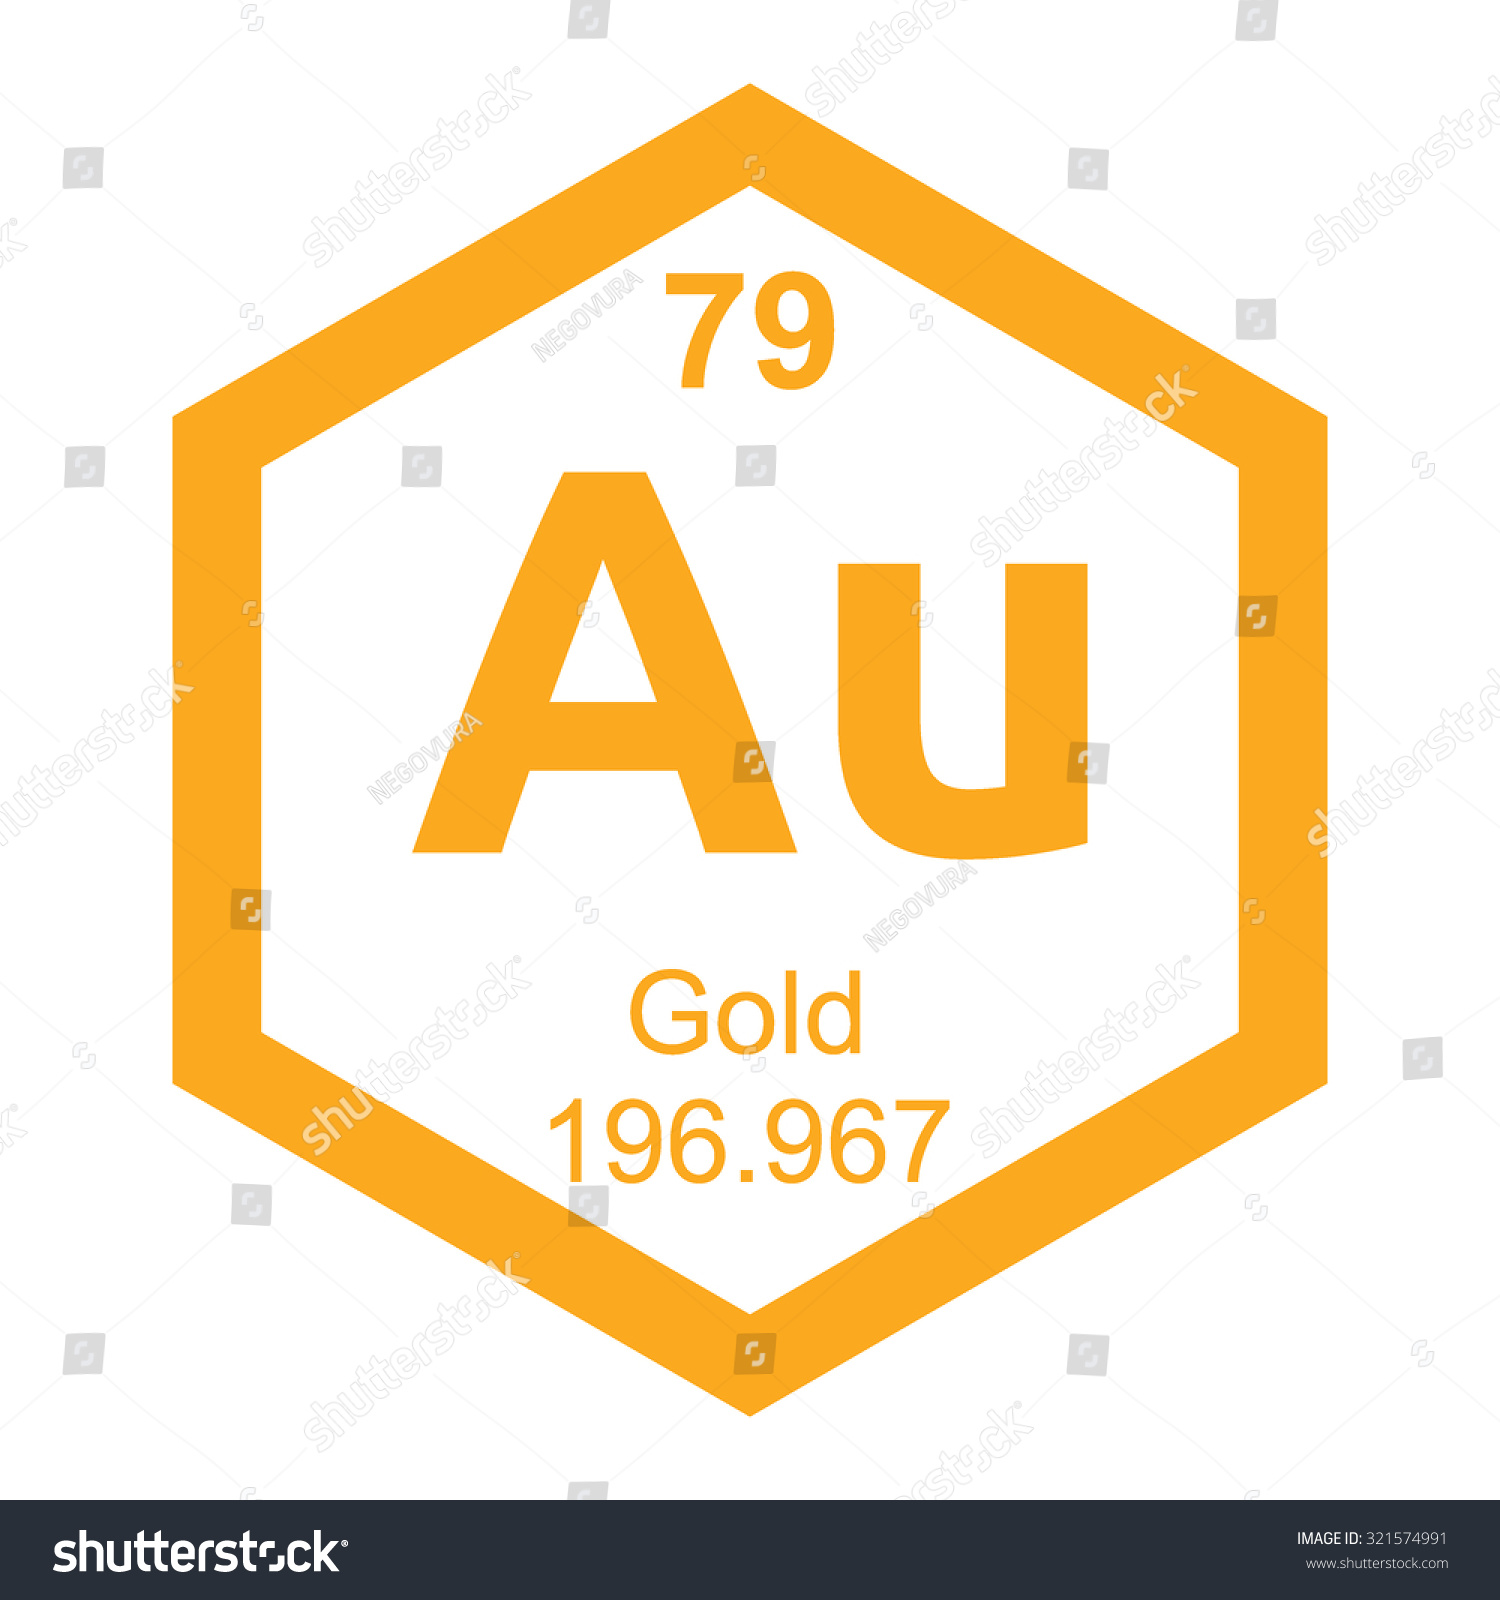 Periodic table gold element stock vector 321574991 shutterstock periodic table gold element gamestrikefo Image collections